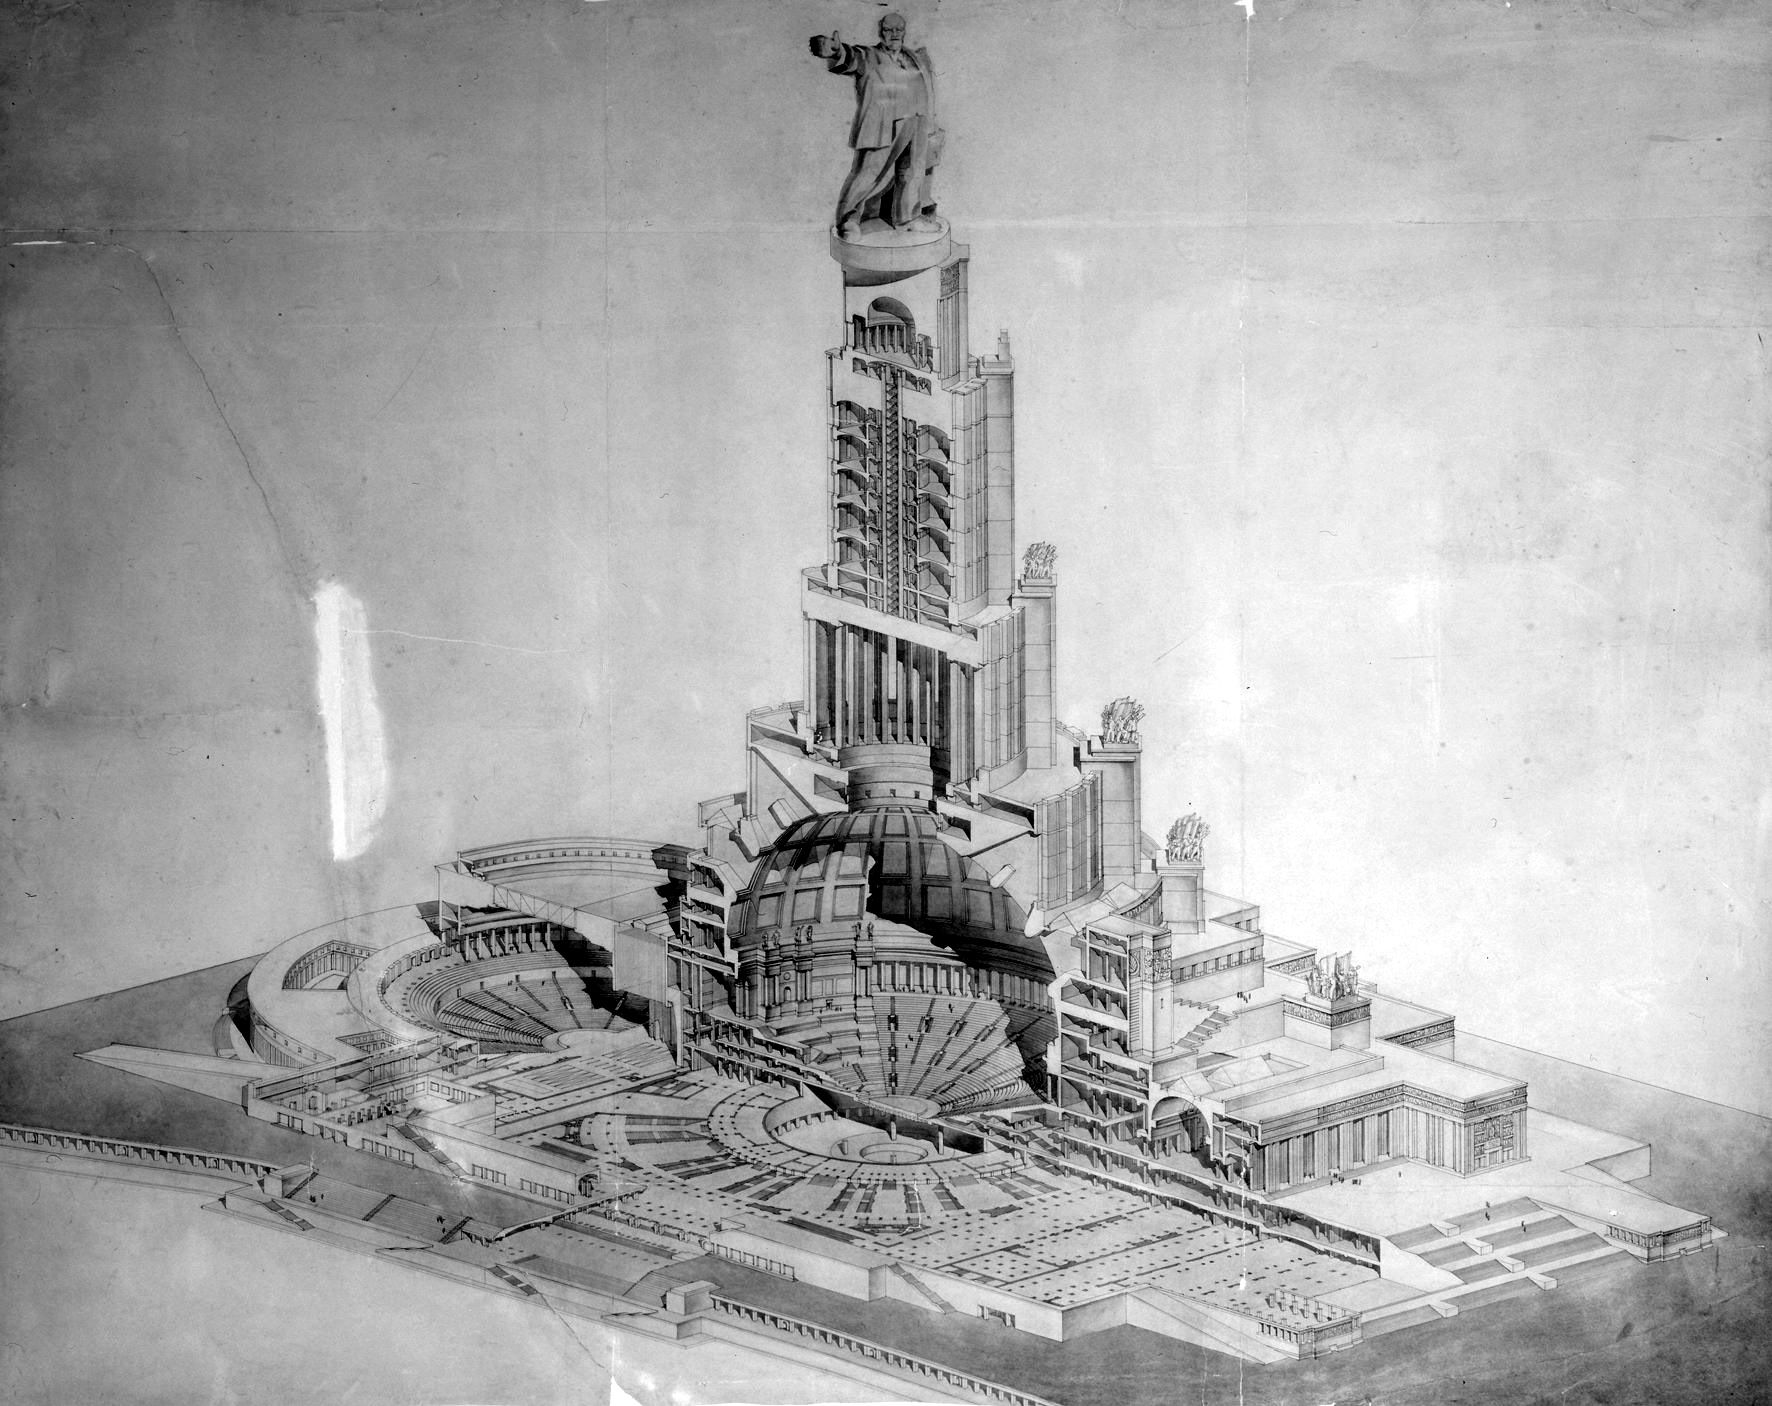 The Palace of Soviets - the utopian project of the USSR 56